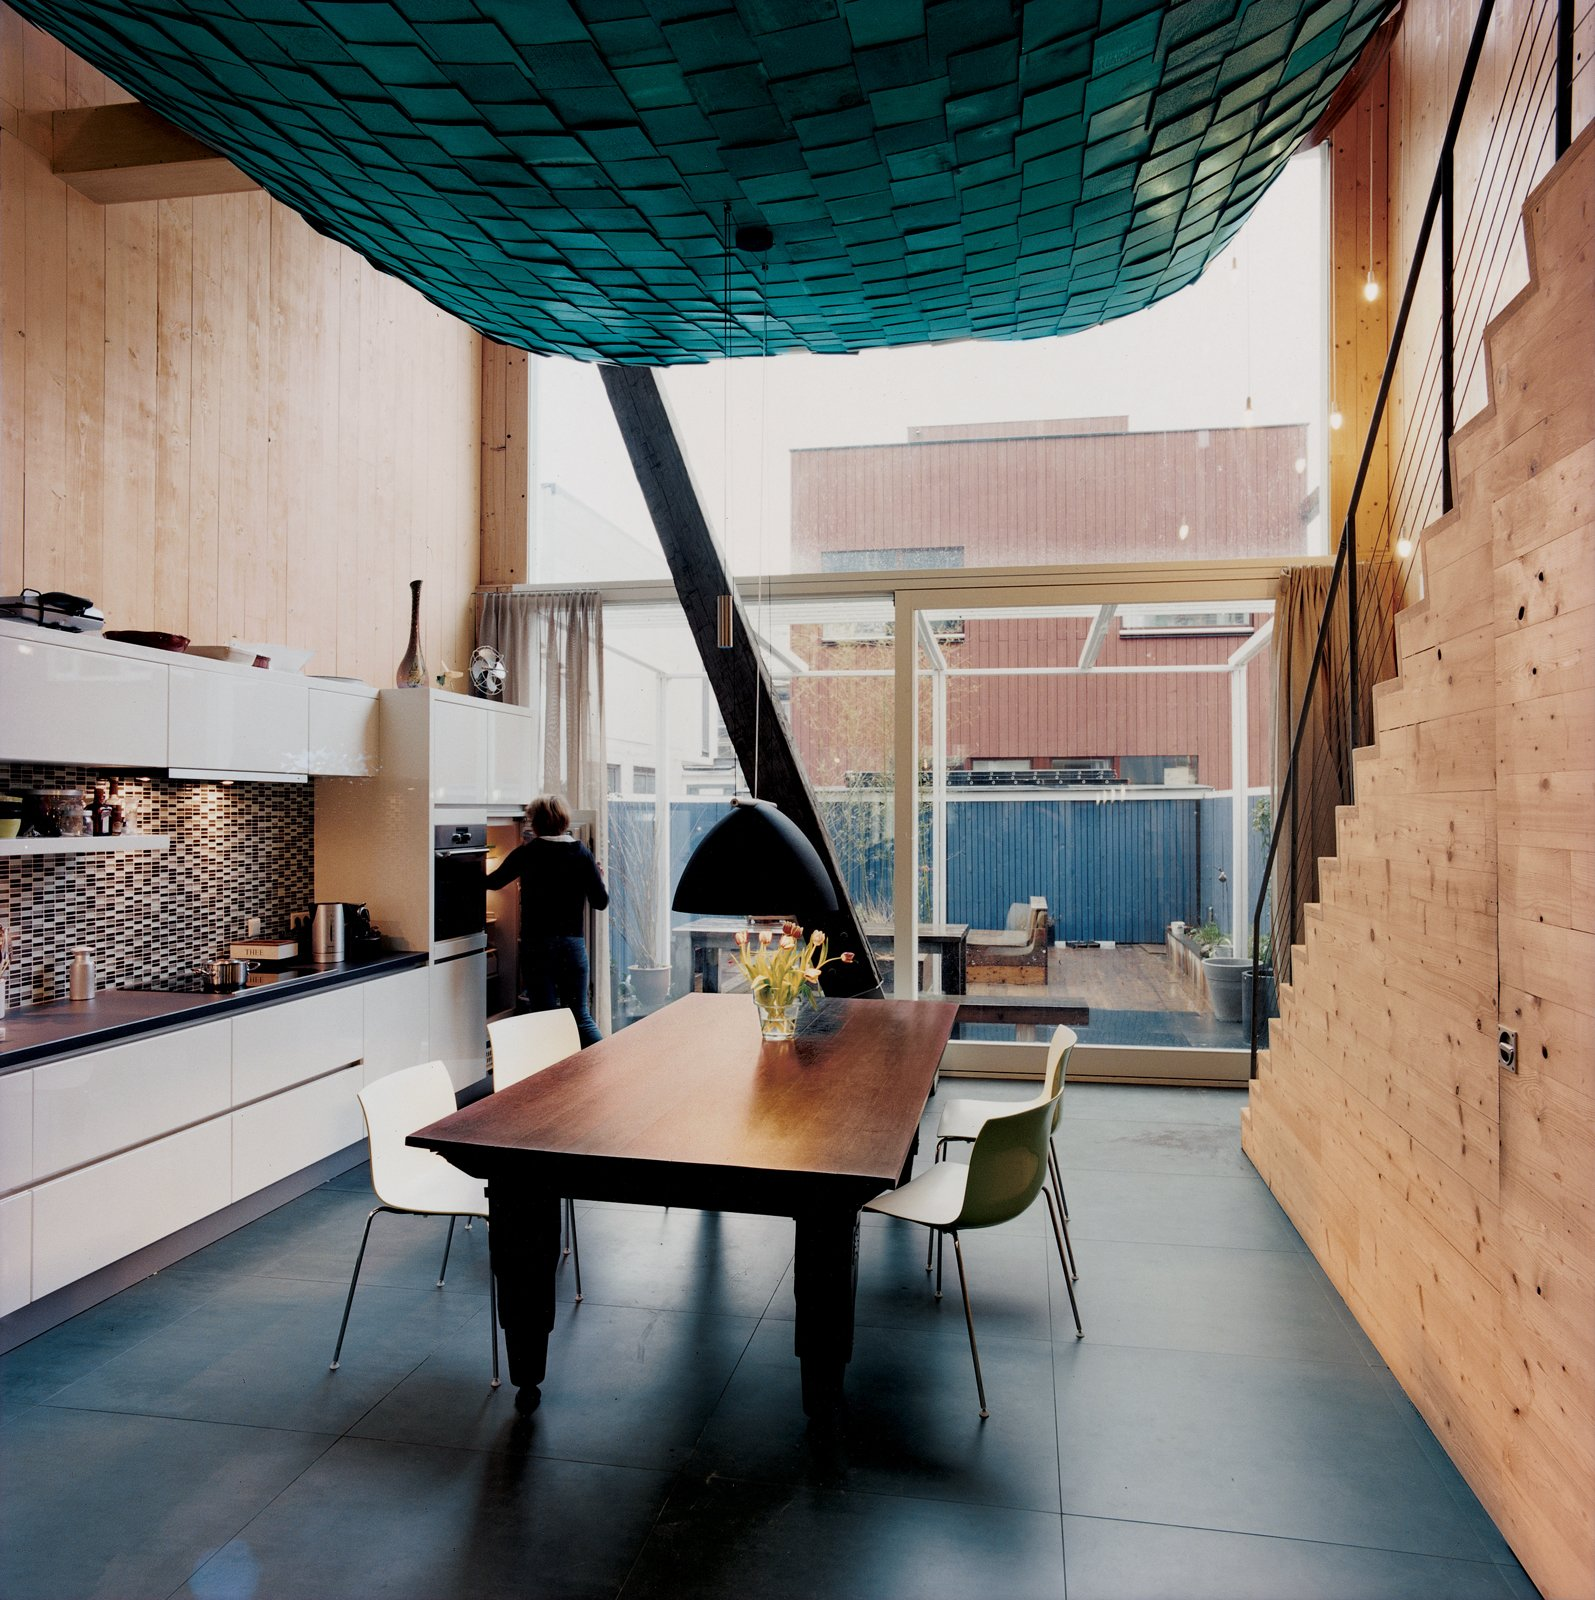 The suspended living room's scaly belly doesn't detract from the unfussy kitchen and dining area. A recycled Berlage-era table base (with a new tabletop), a deep blue lamp, and Arper chairs add to the maritime feel of the house.  Photo 5 of 10 in A Suspended Living Room Floats Like an Air Ship